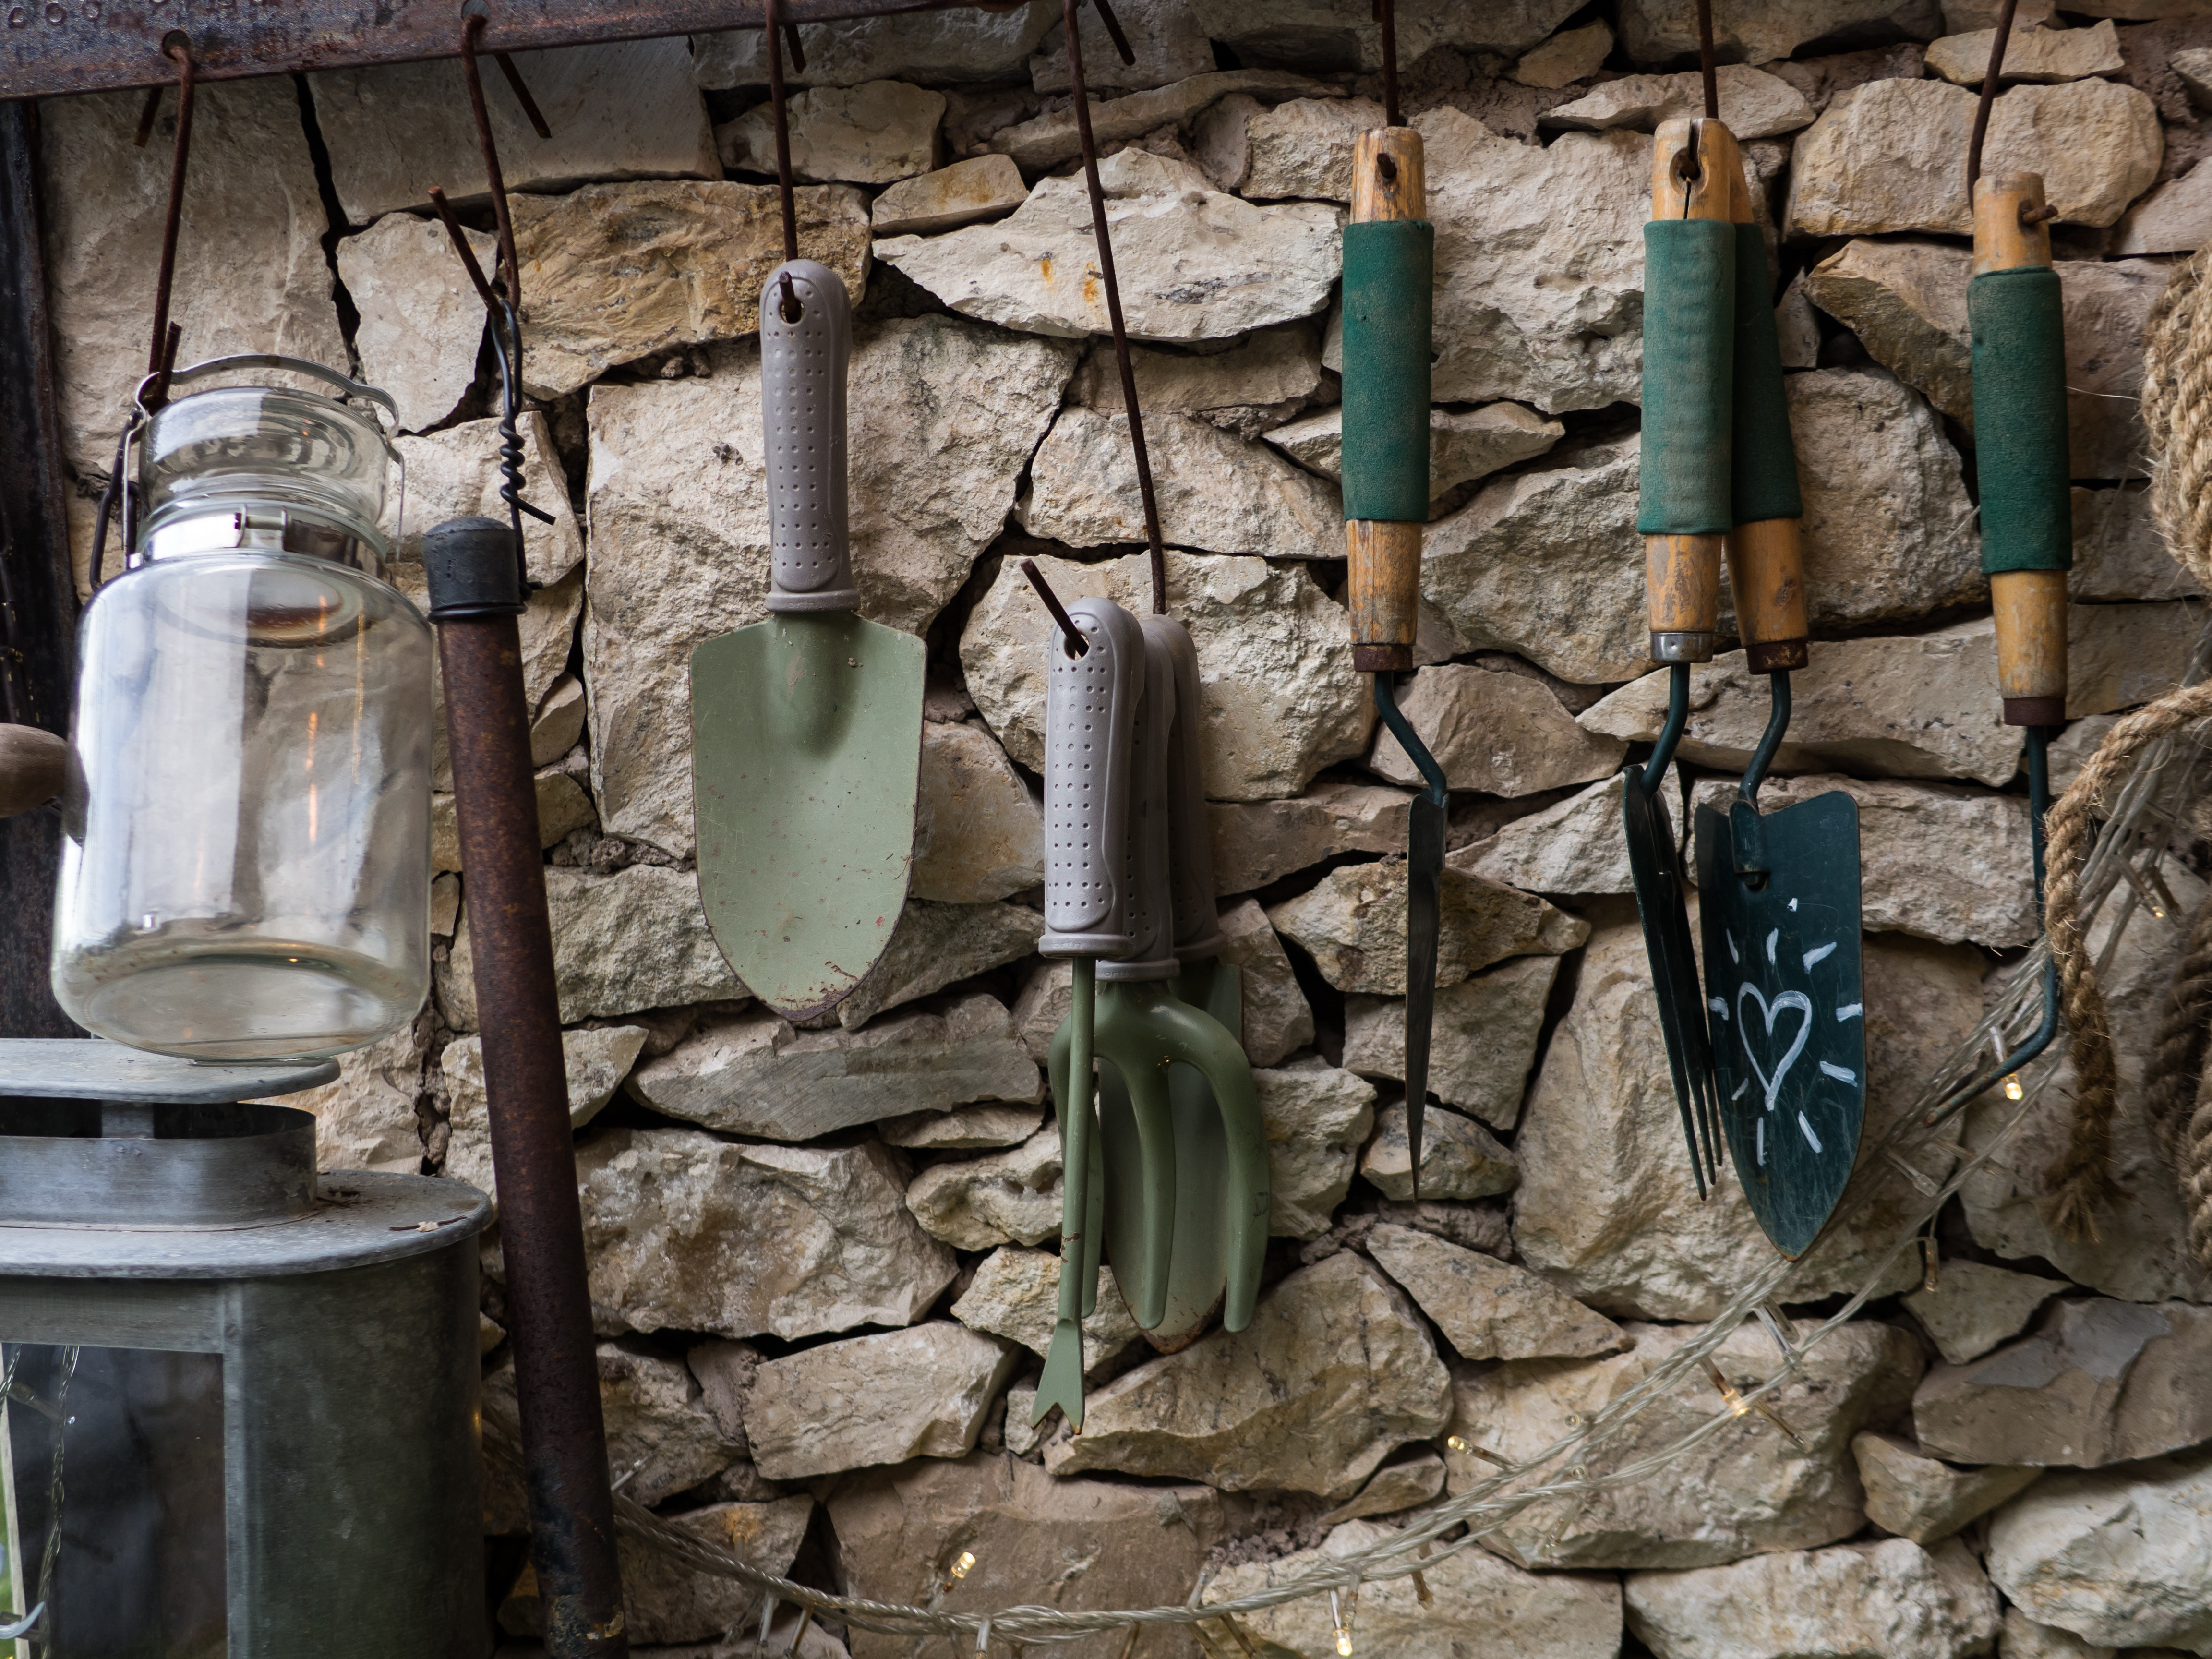 garden equipment hanging on the wall